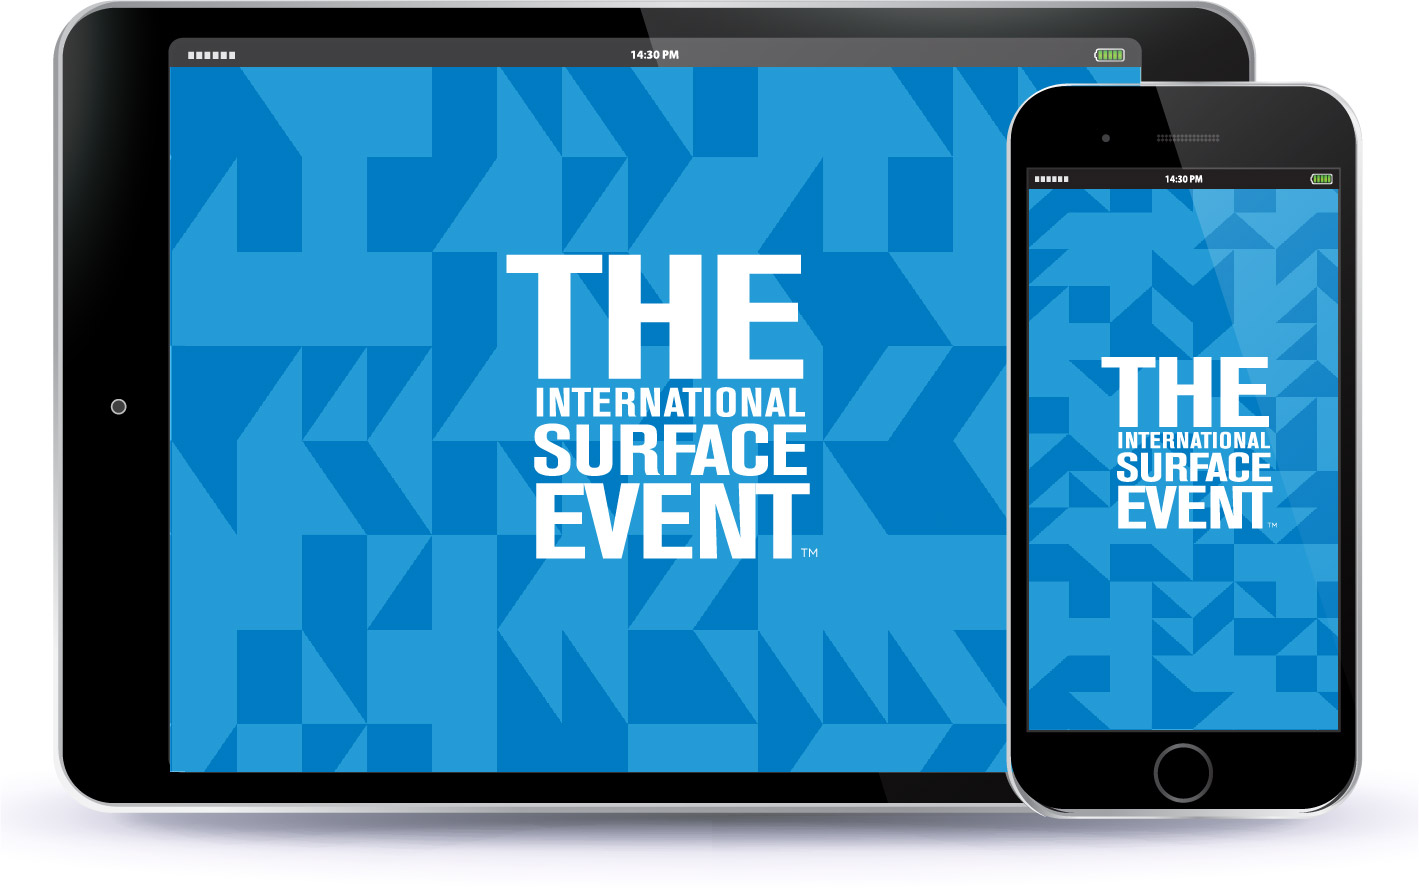 Download the TISE Mobile App